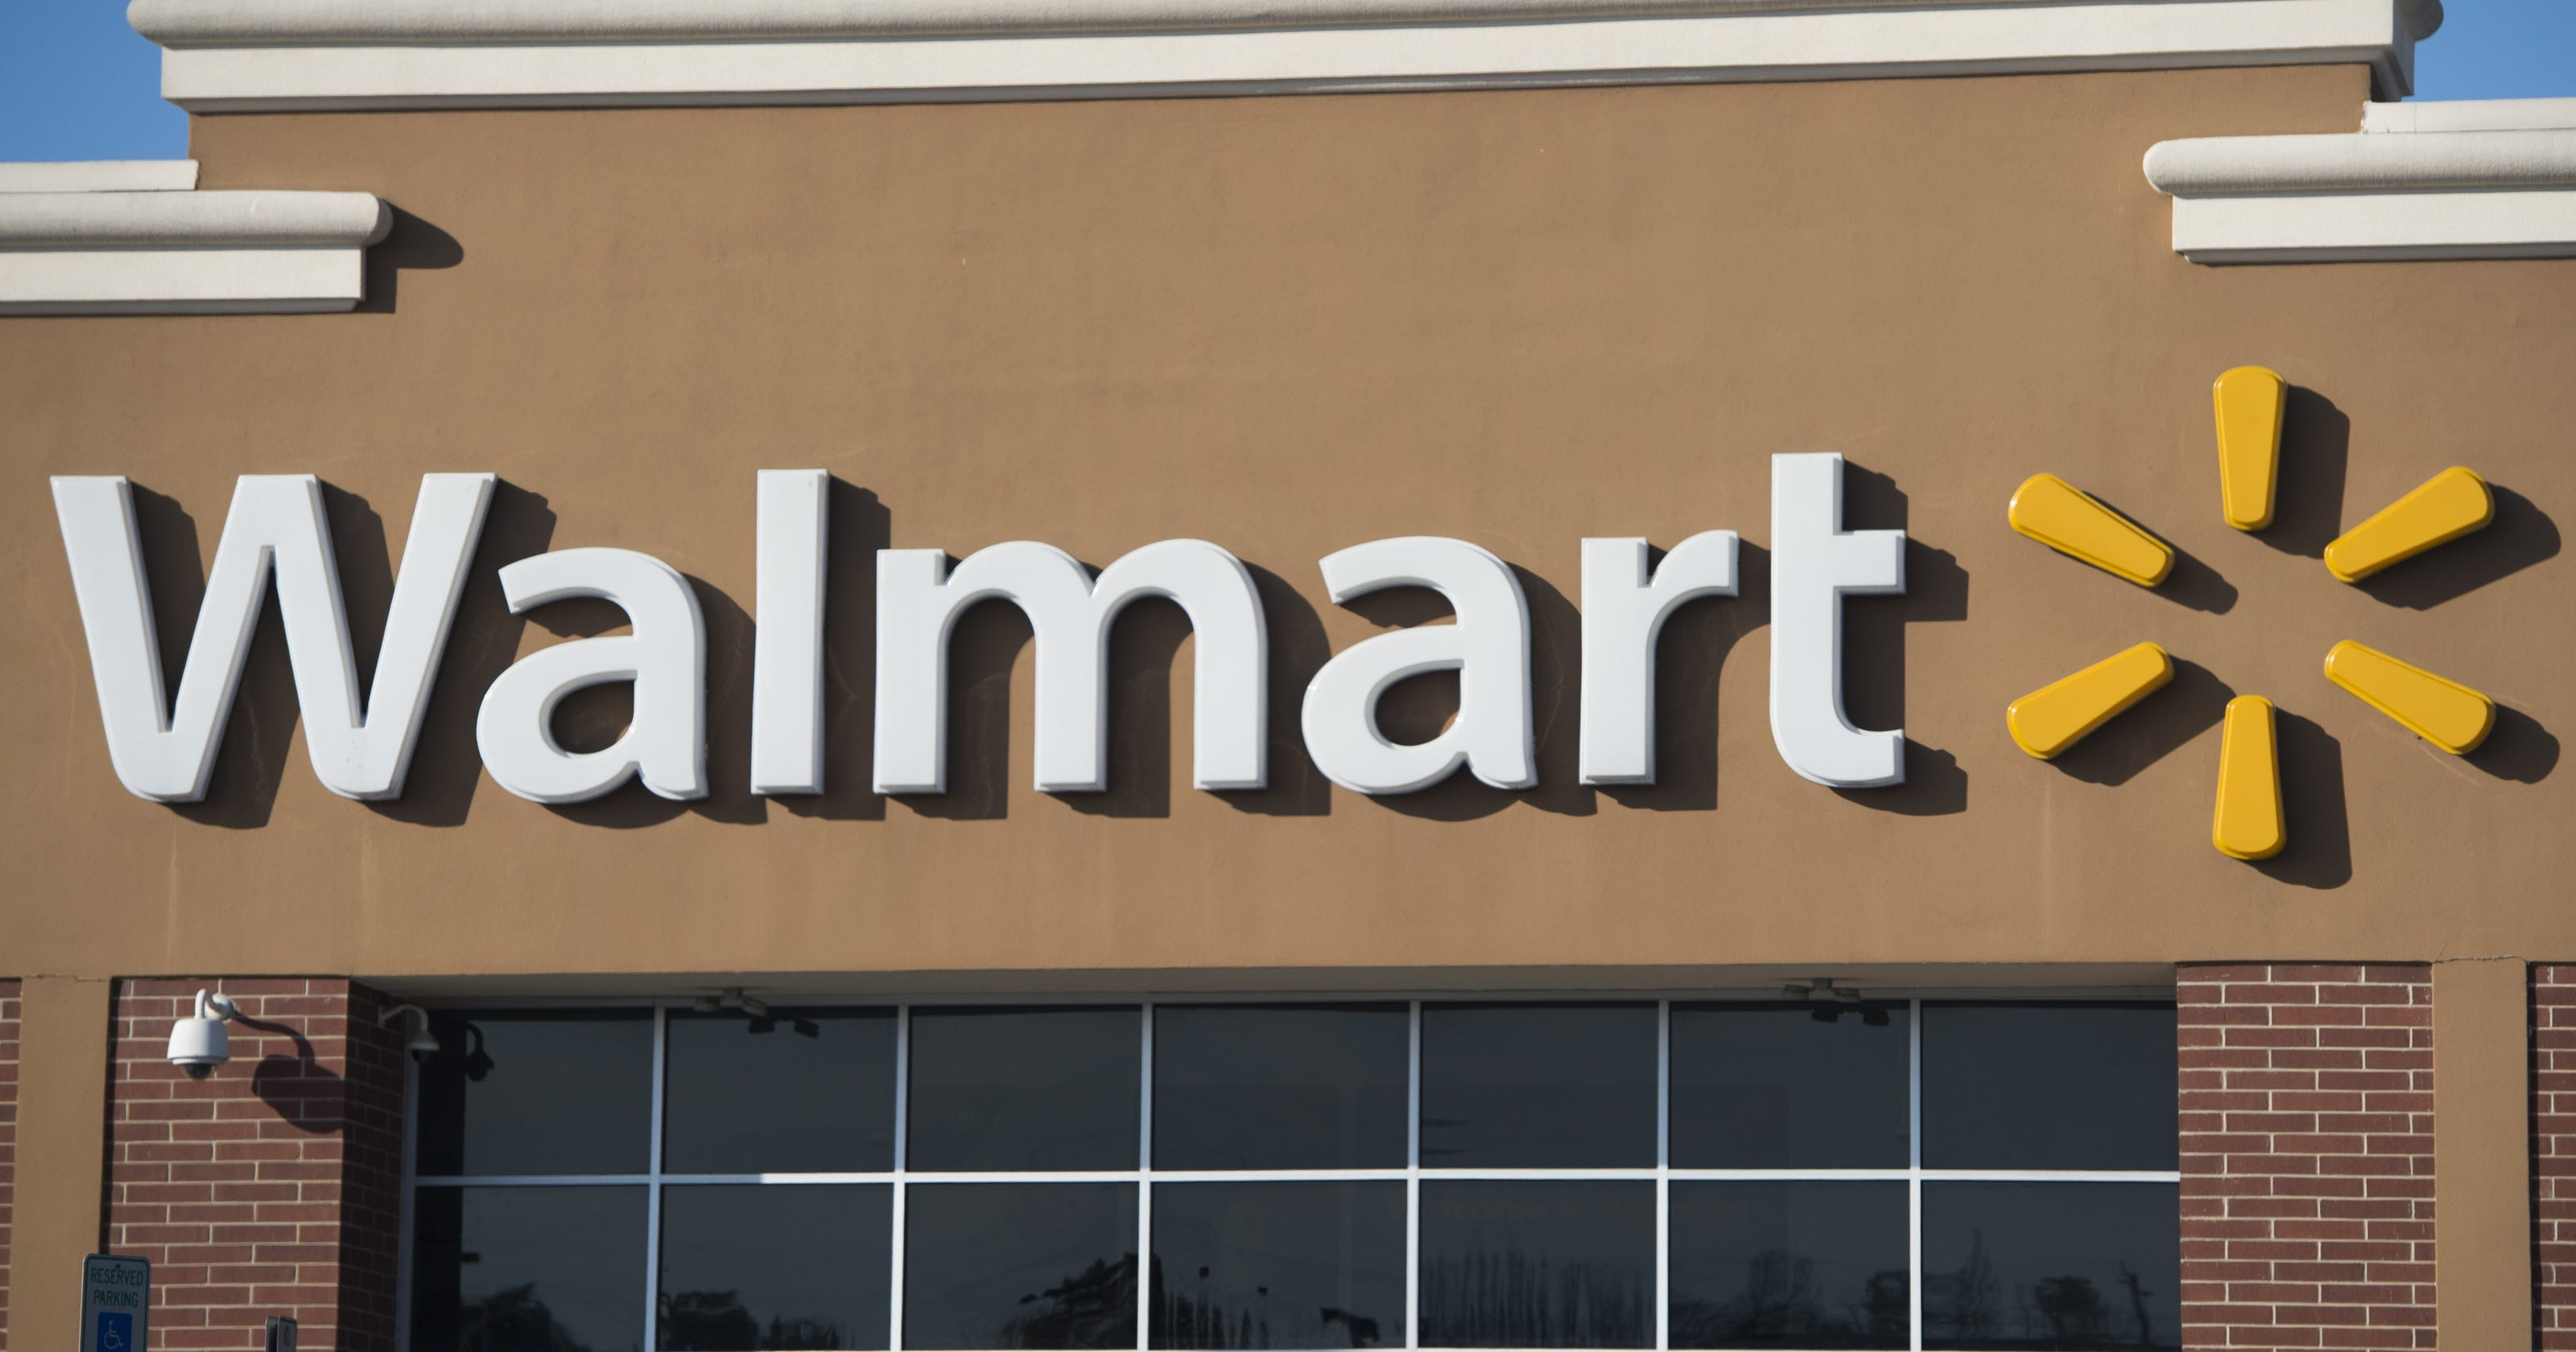 afde7e3ae6bb7 Walmart to deliver groceries to more than 40% of U.S. households